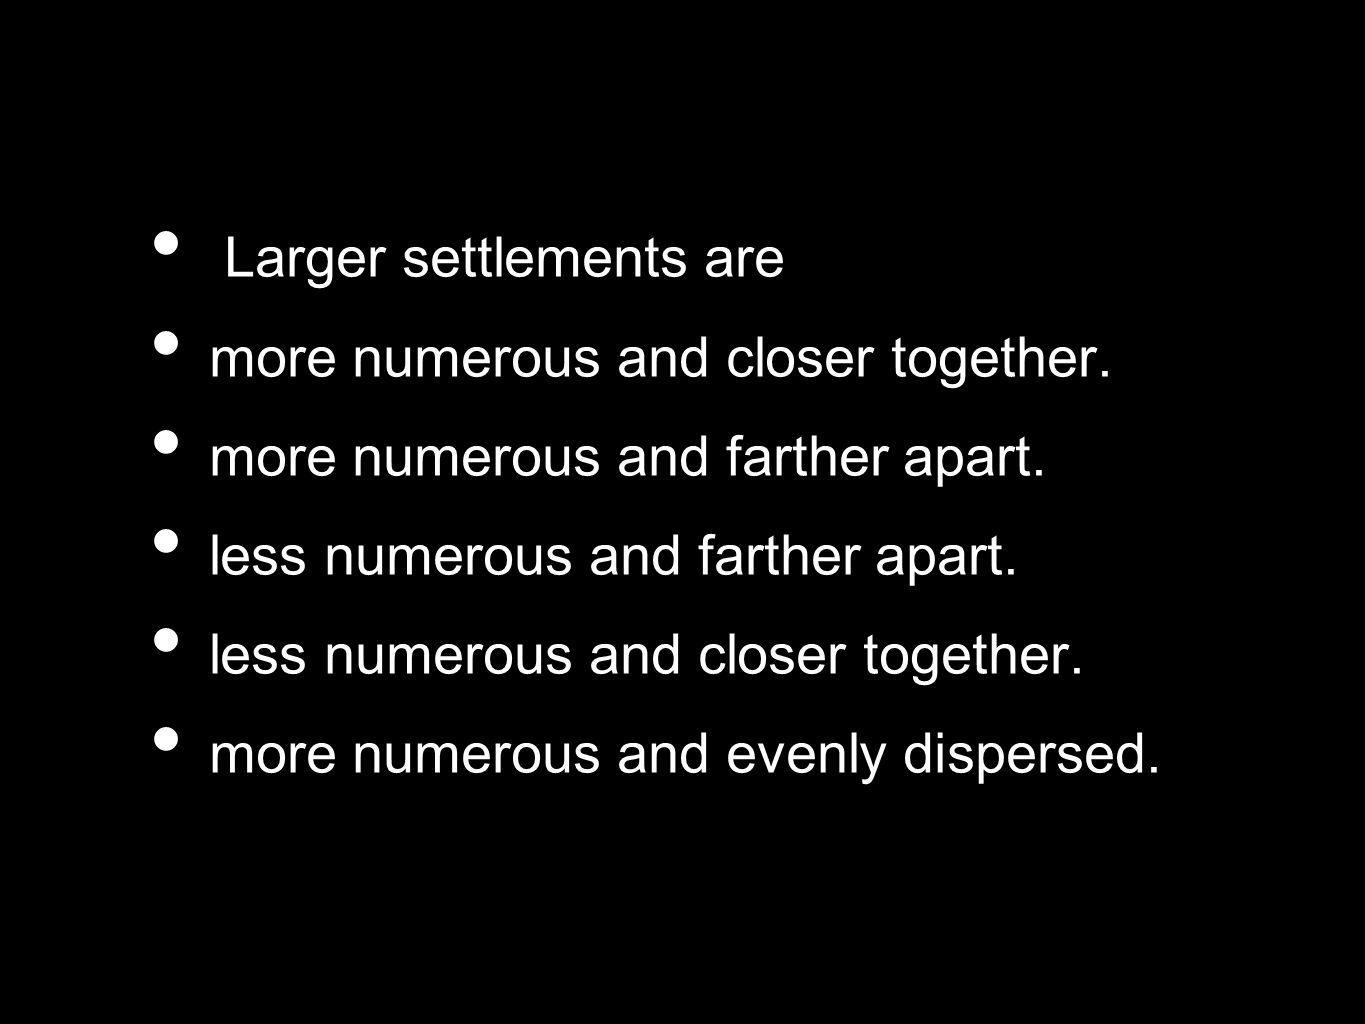 Larger settlements are